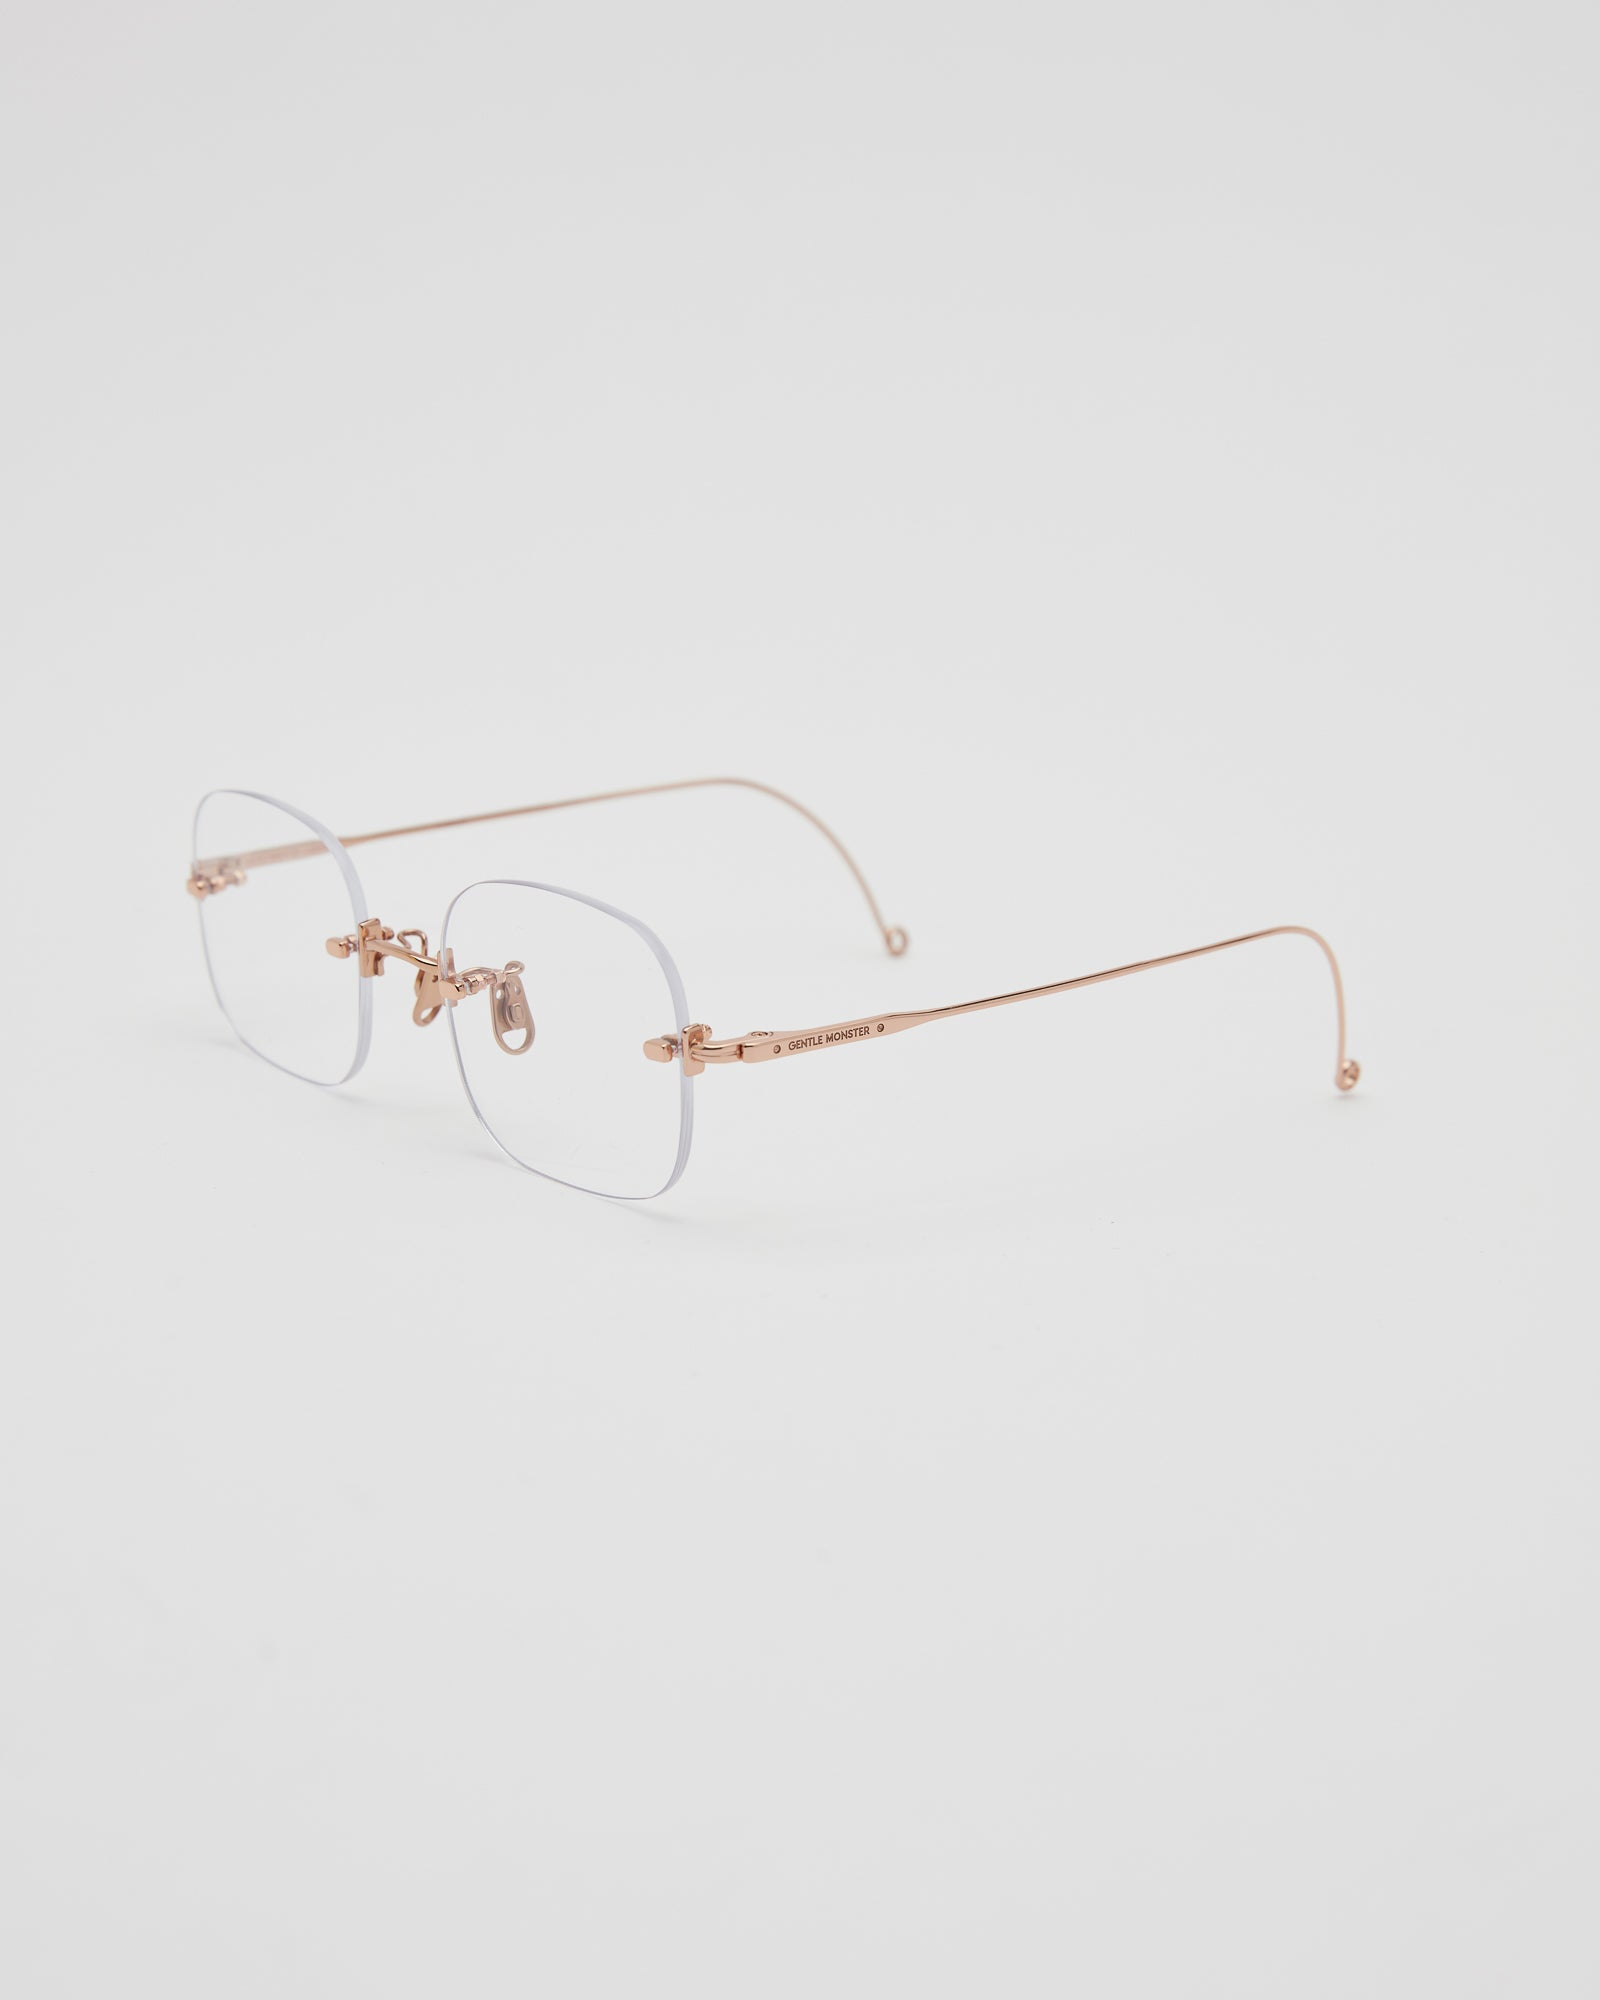 Jennie Daisy 032 Spectacle Frames in Gray/Gold